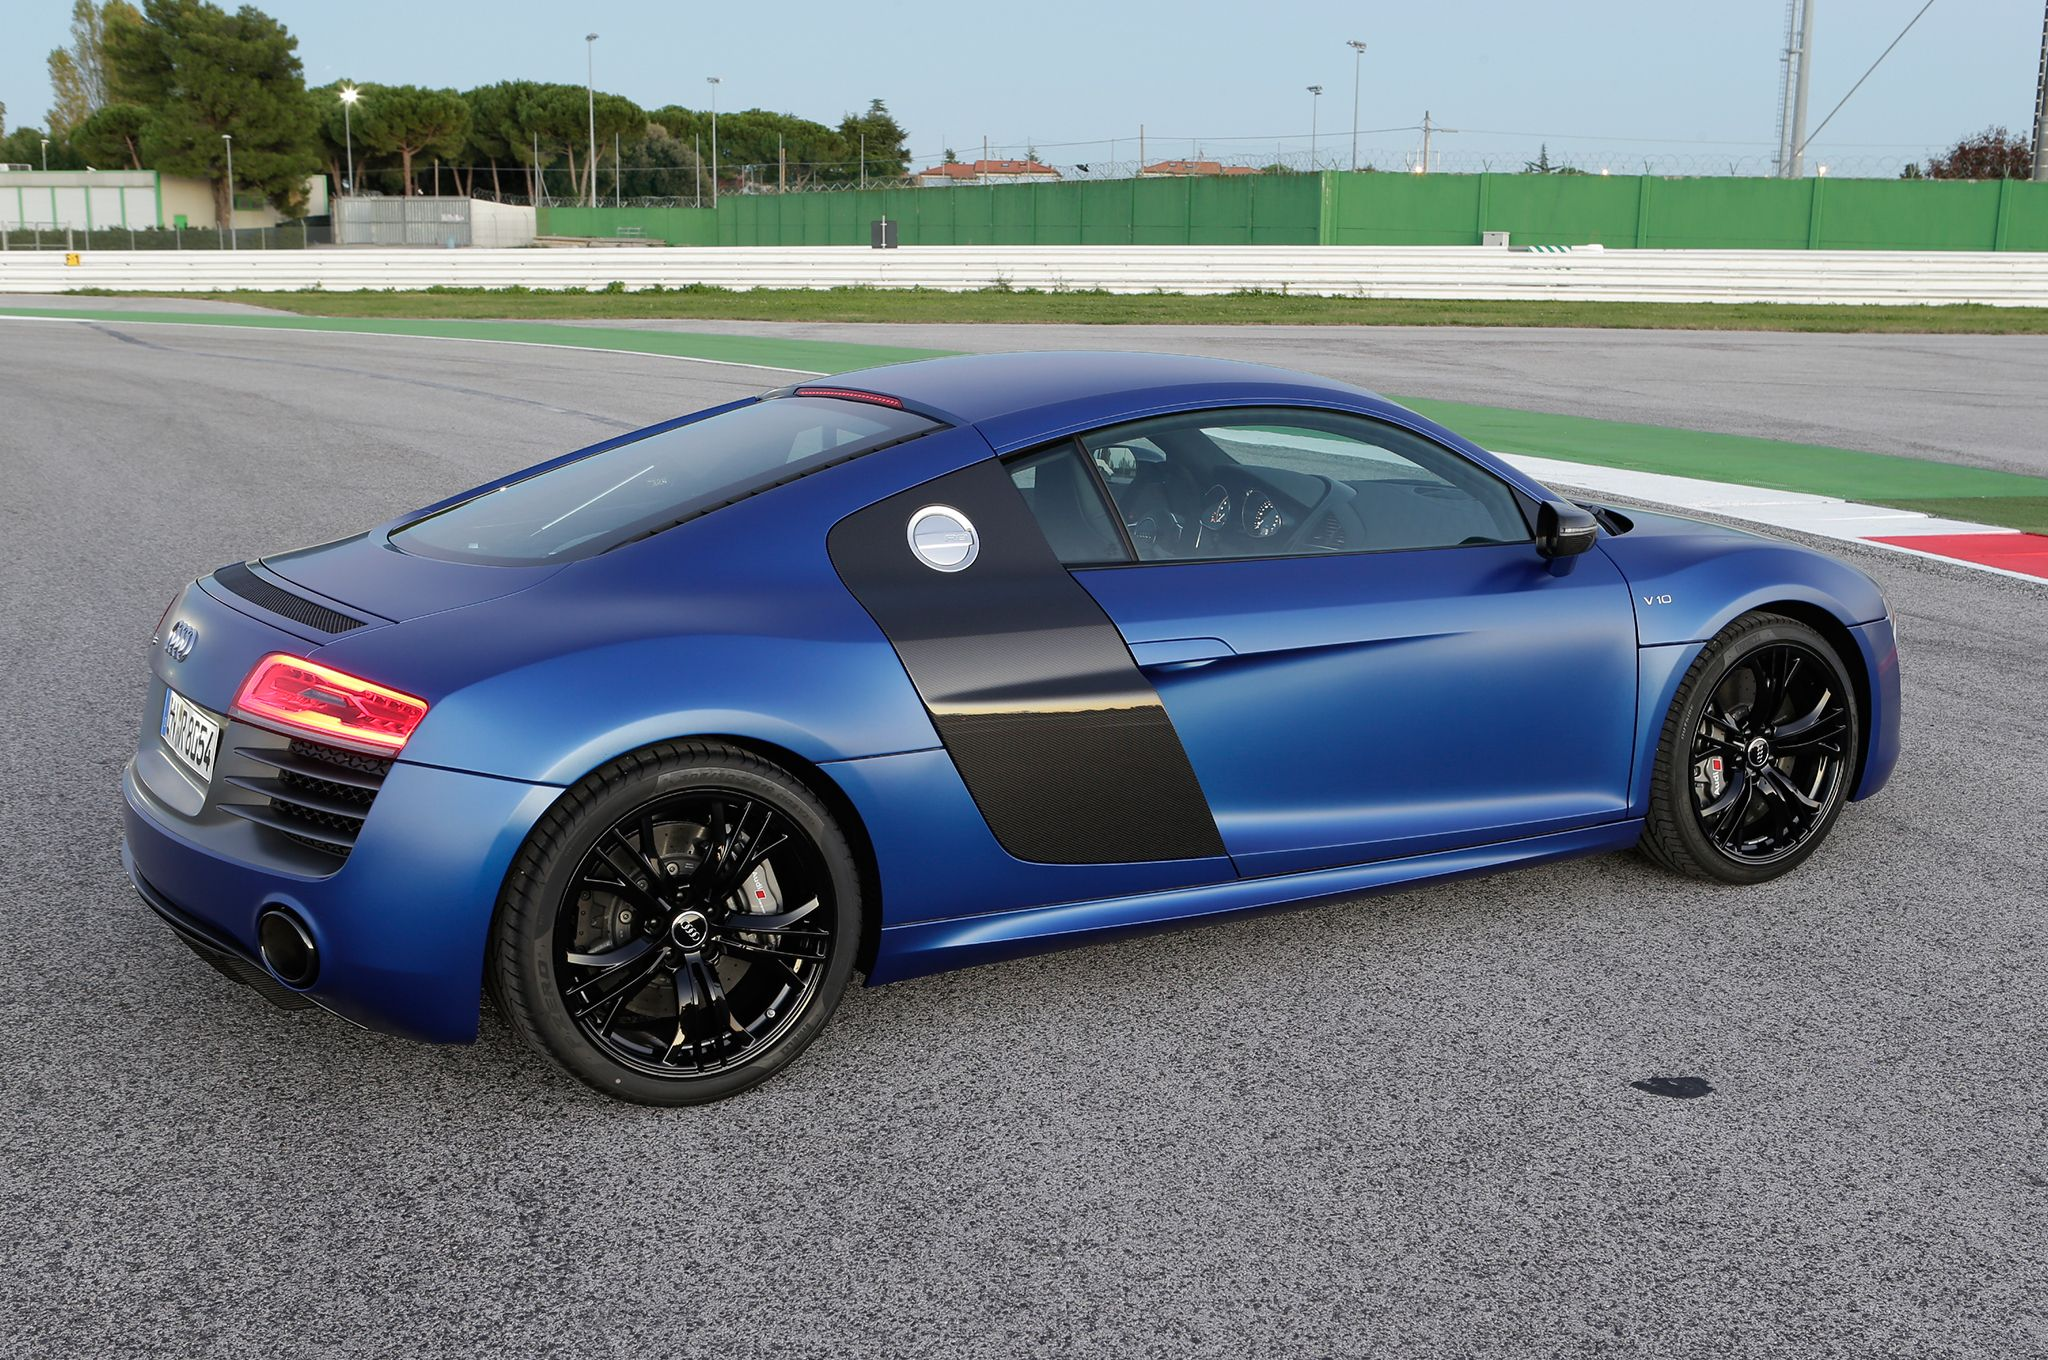 Audi Says Next Gen R8 Will Be Up To 130 Pounds Lighter 2013 L A